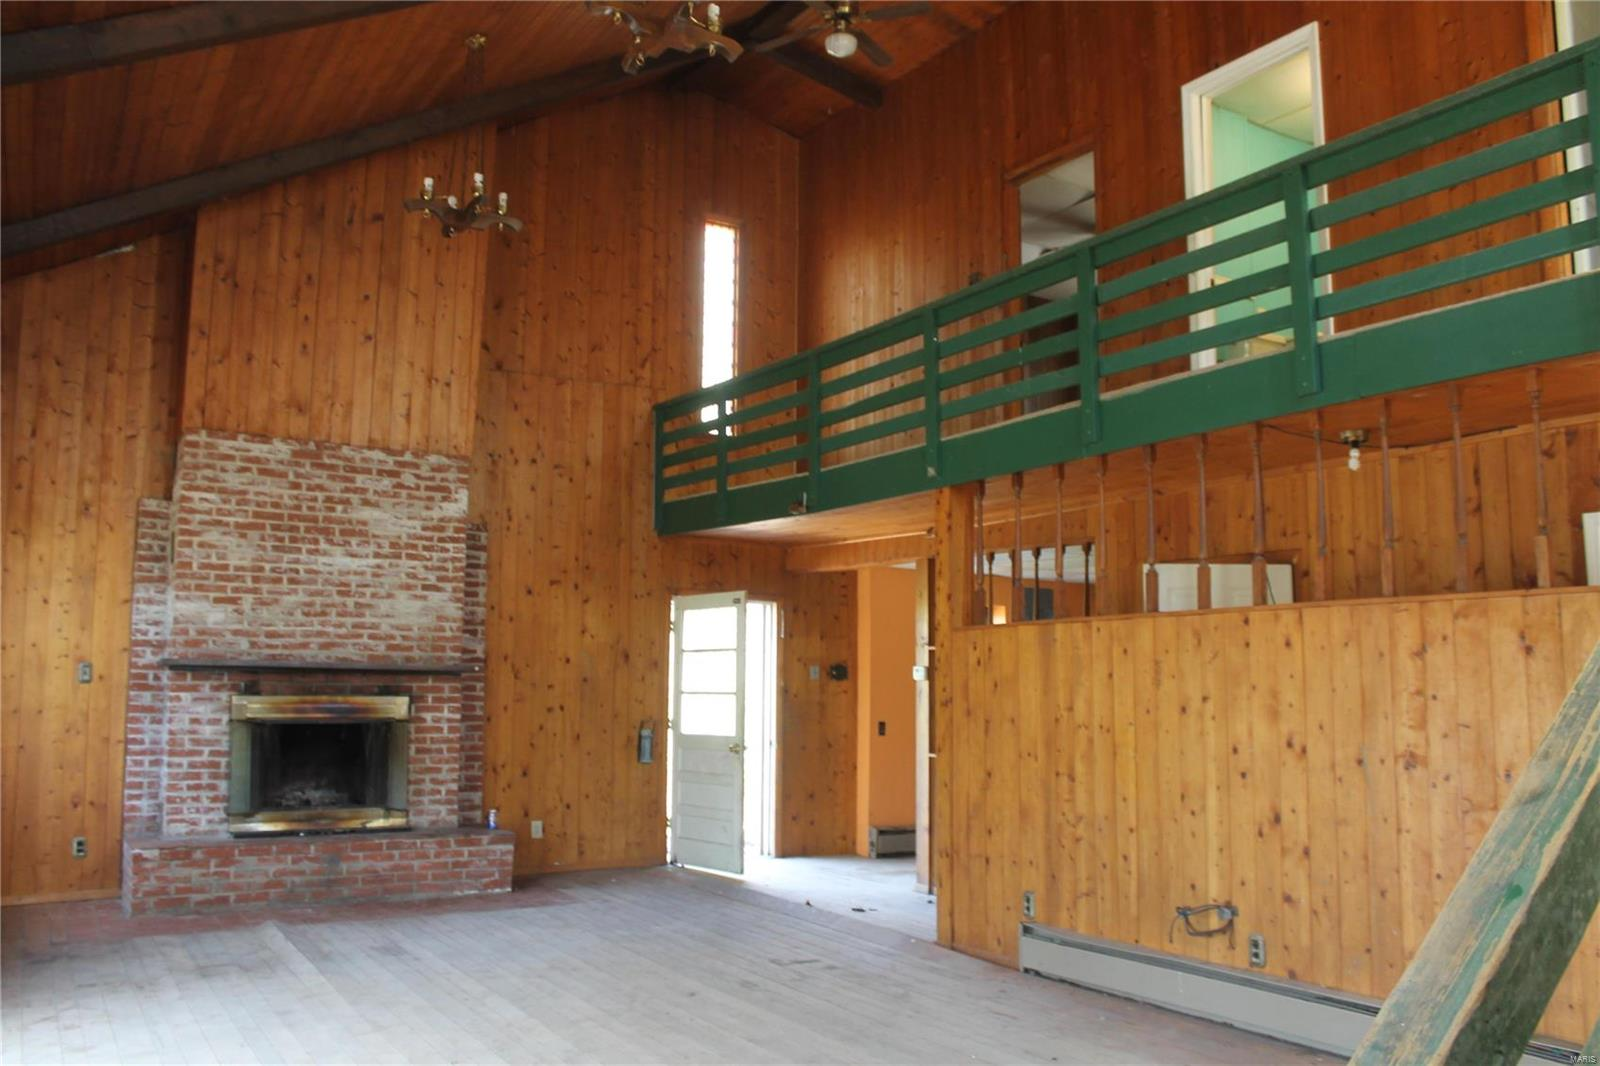 5530 W Calvey Property Photo - Catawissa, MO real estate listing